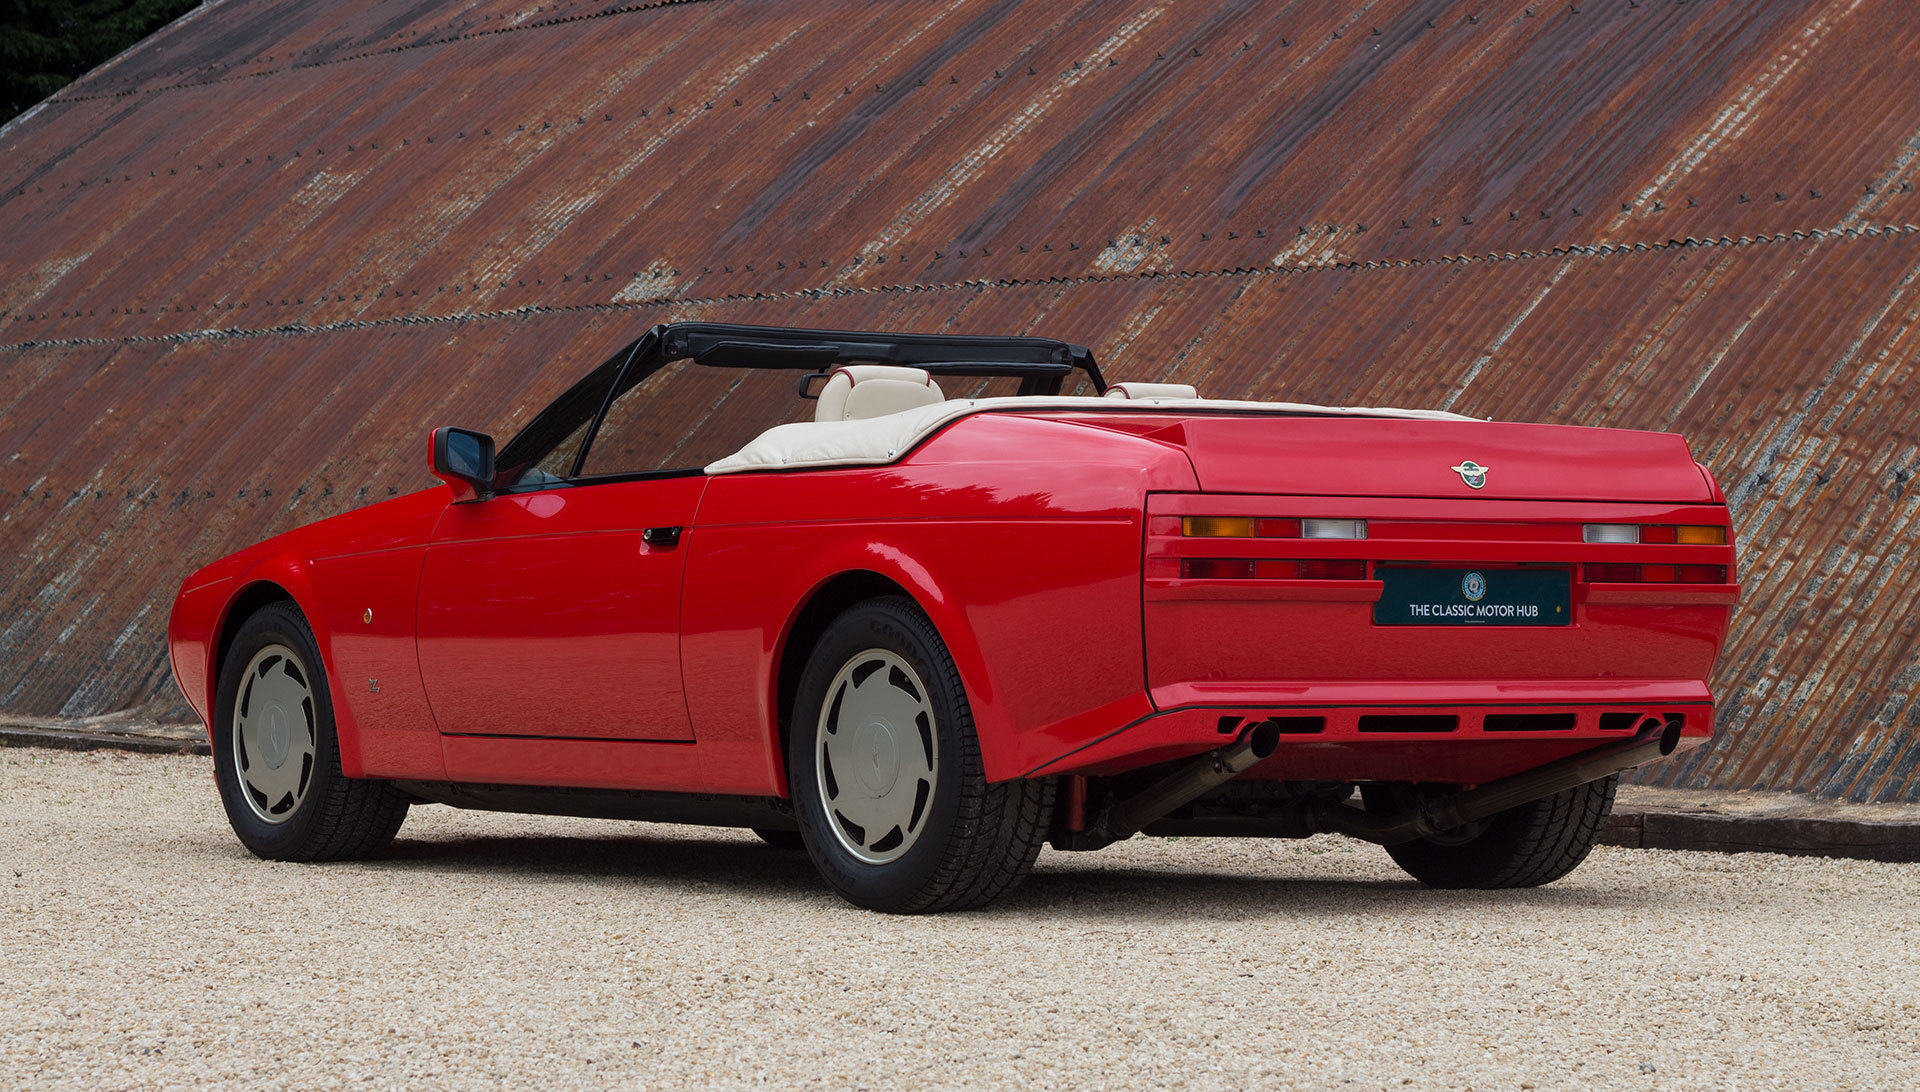 1989 Aston Martin V8 Vantage Volante Zagato 6.3 Litre For Sale (picture 3 of 24)